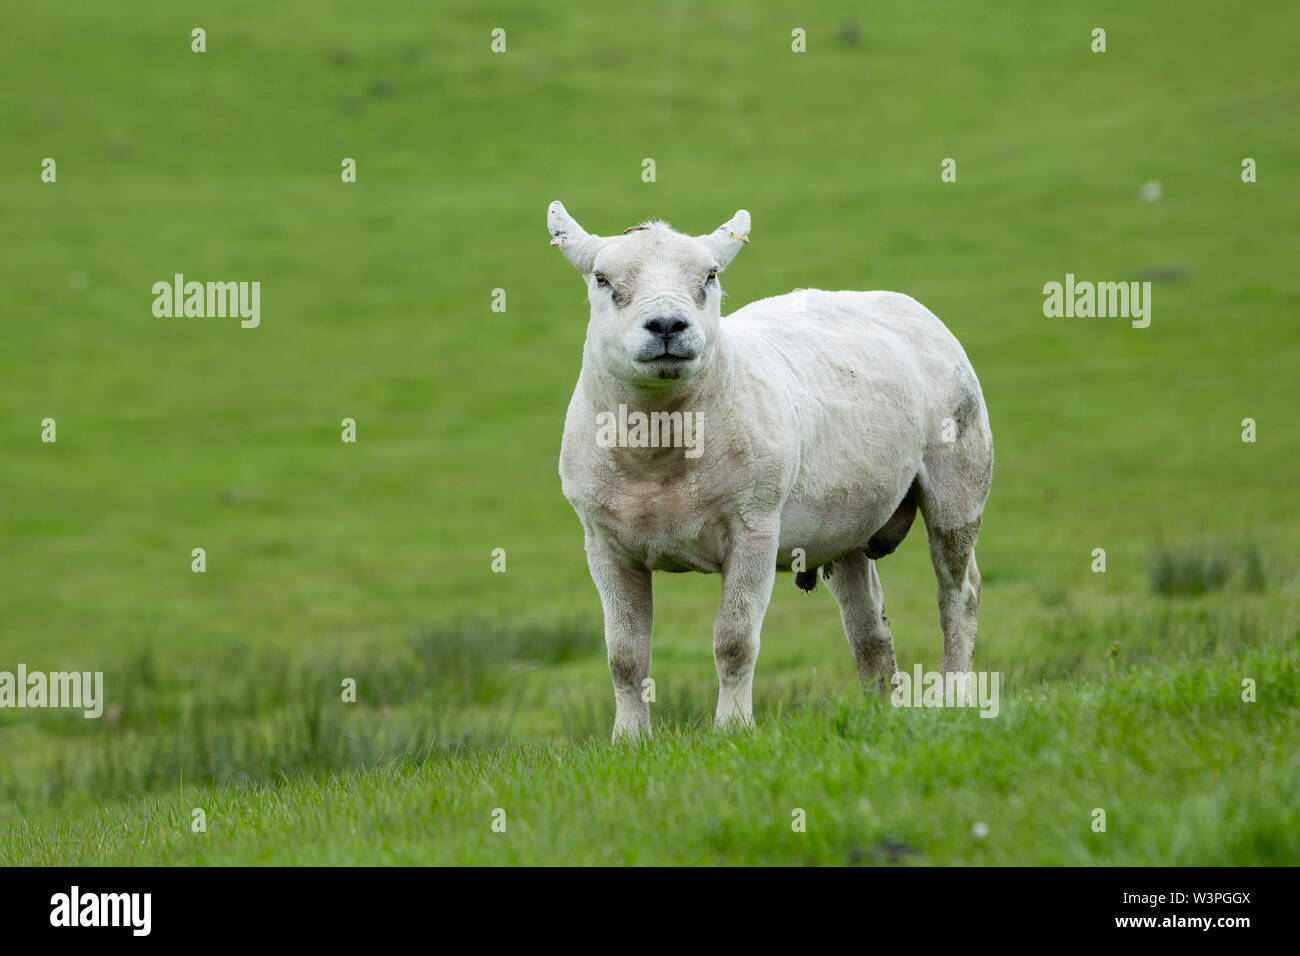 A Texel Tup Ram. - Stock Image